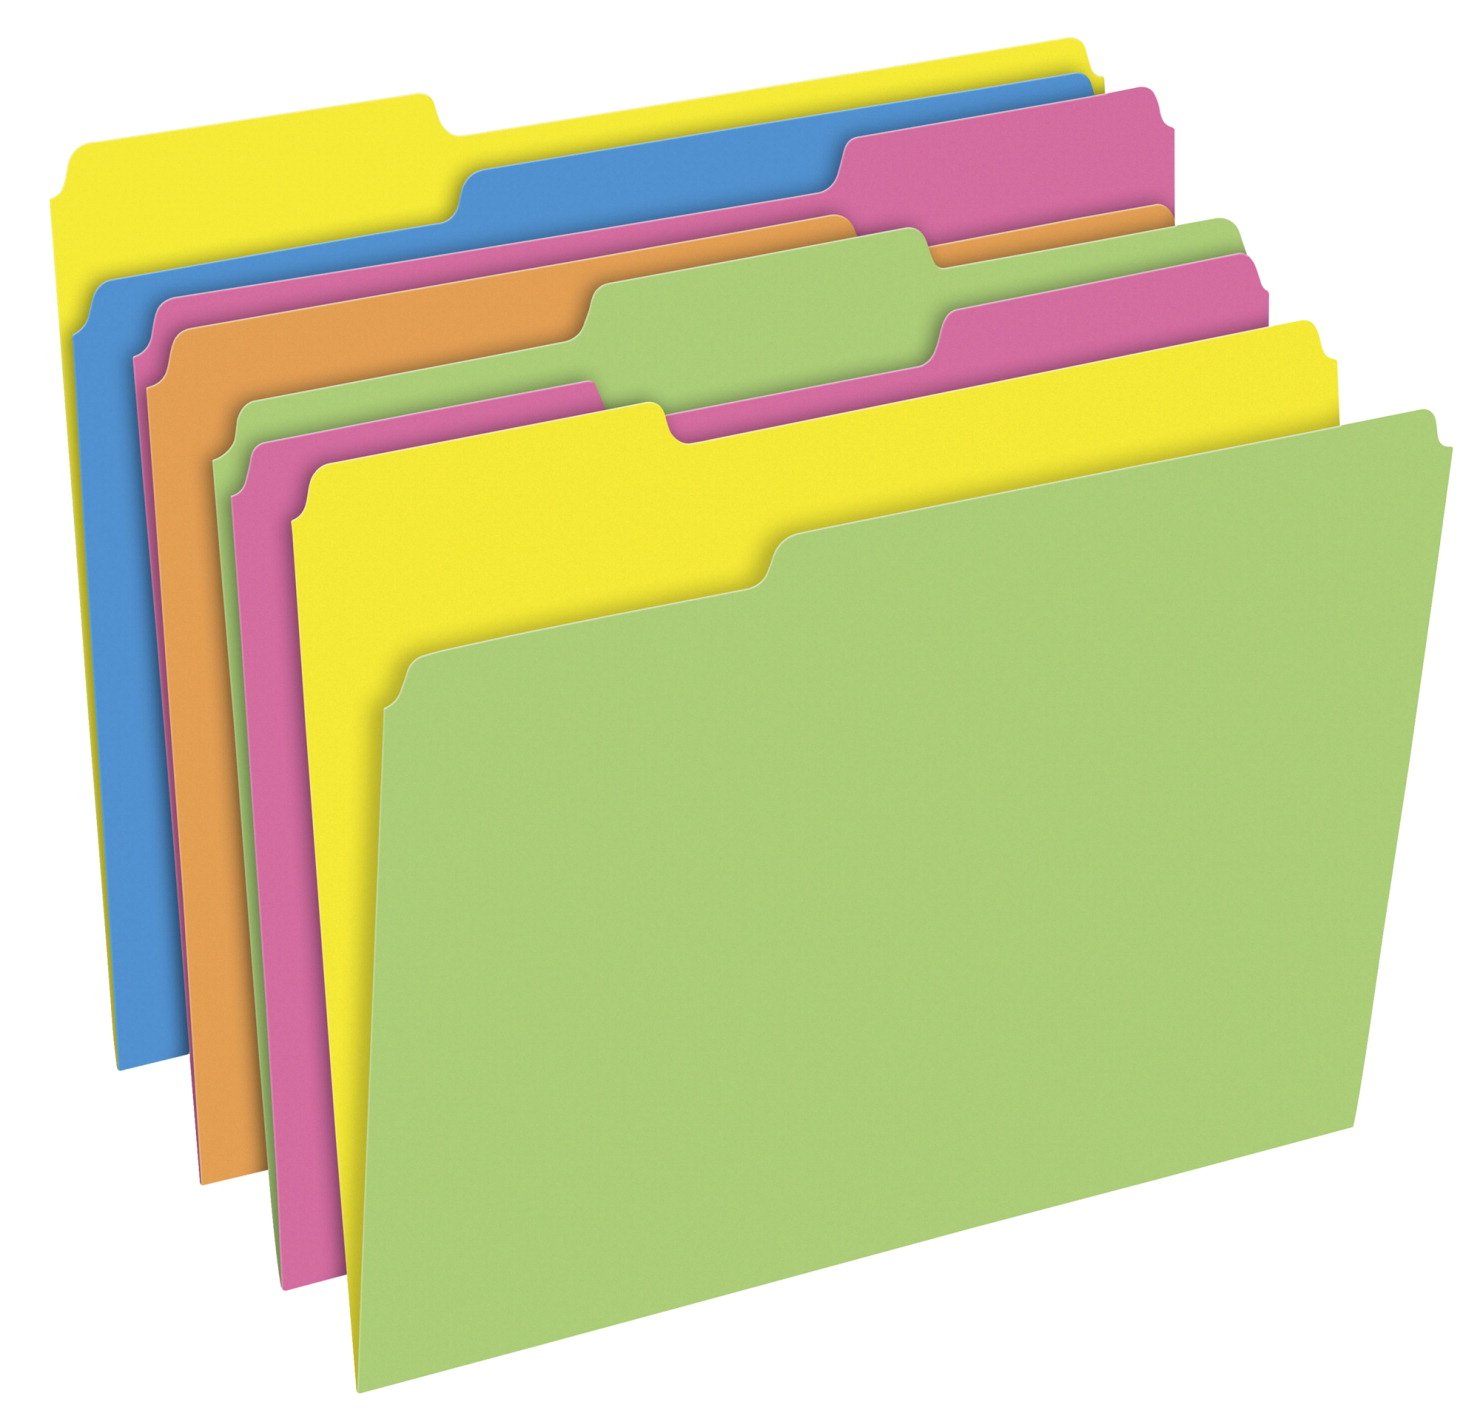 Pendaflex Glow Twisted File Folders, 3 Tab, Assorted Colors, Pack of 24